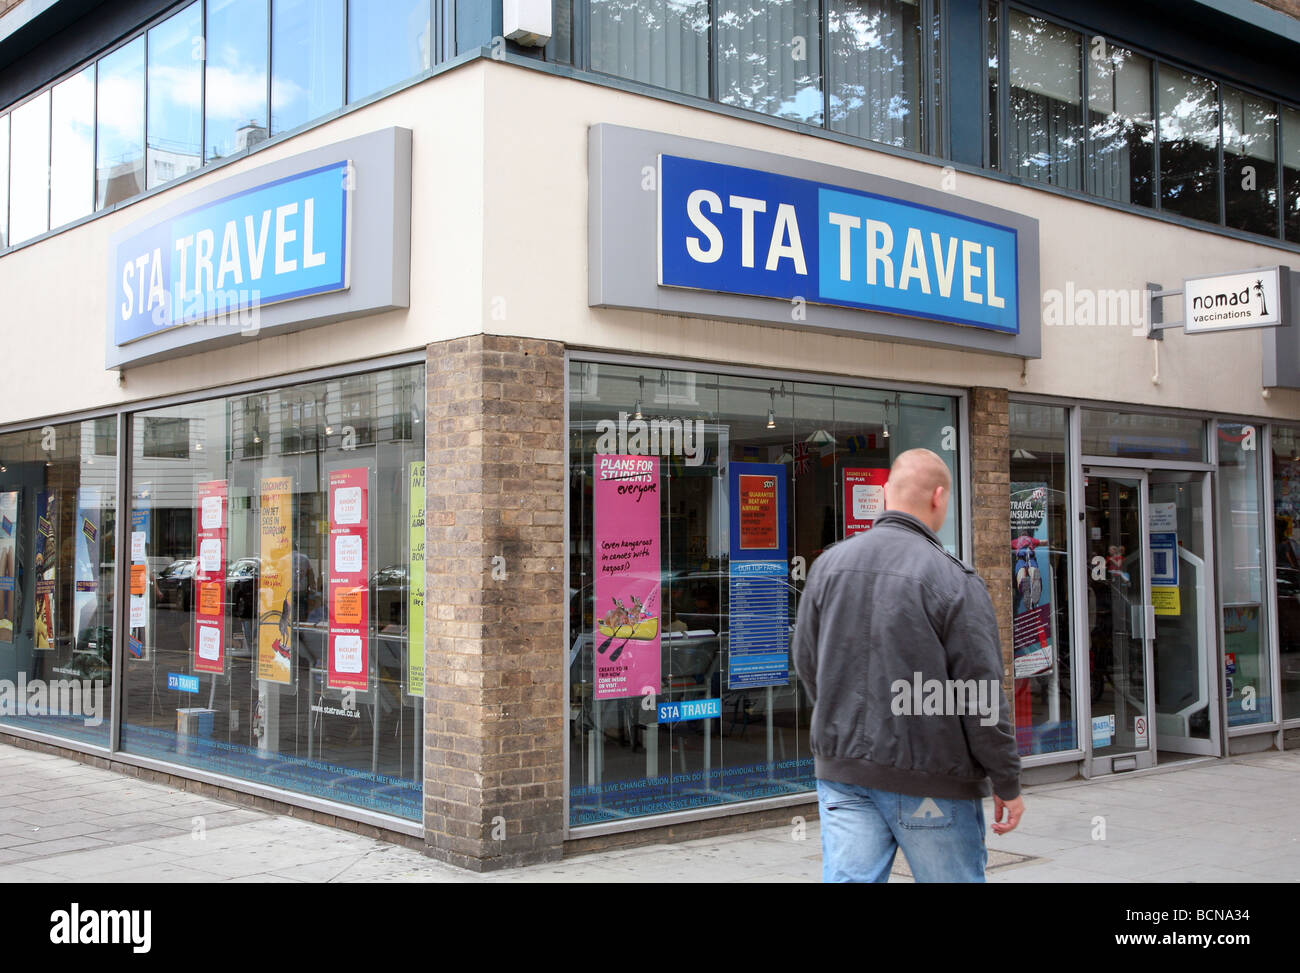 Branch of STA travel agents, central London - Stock Image